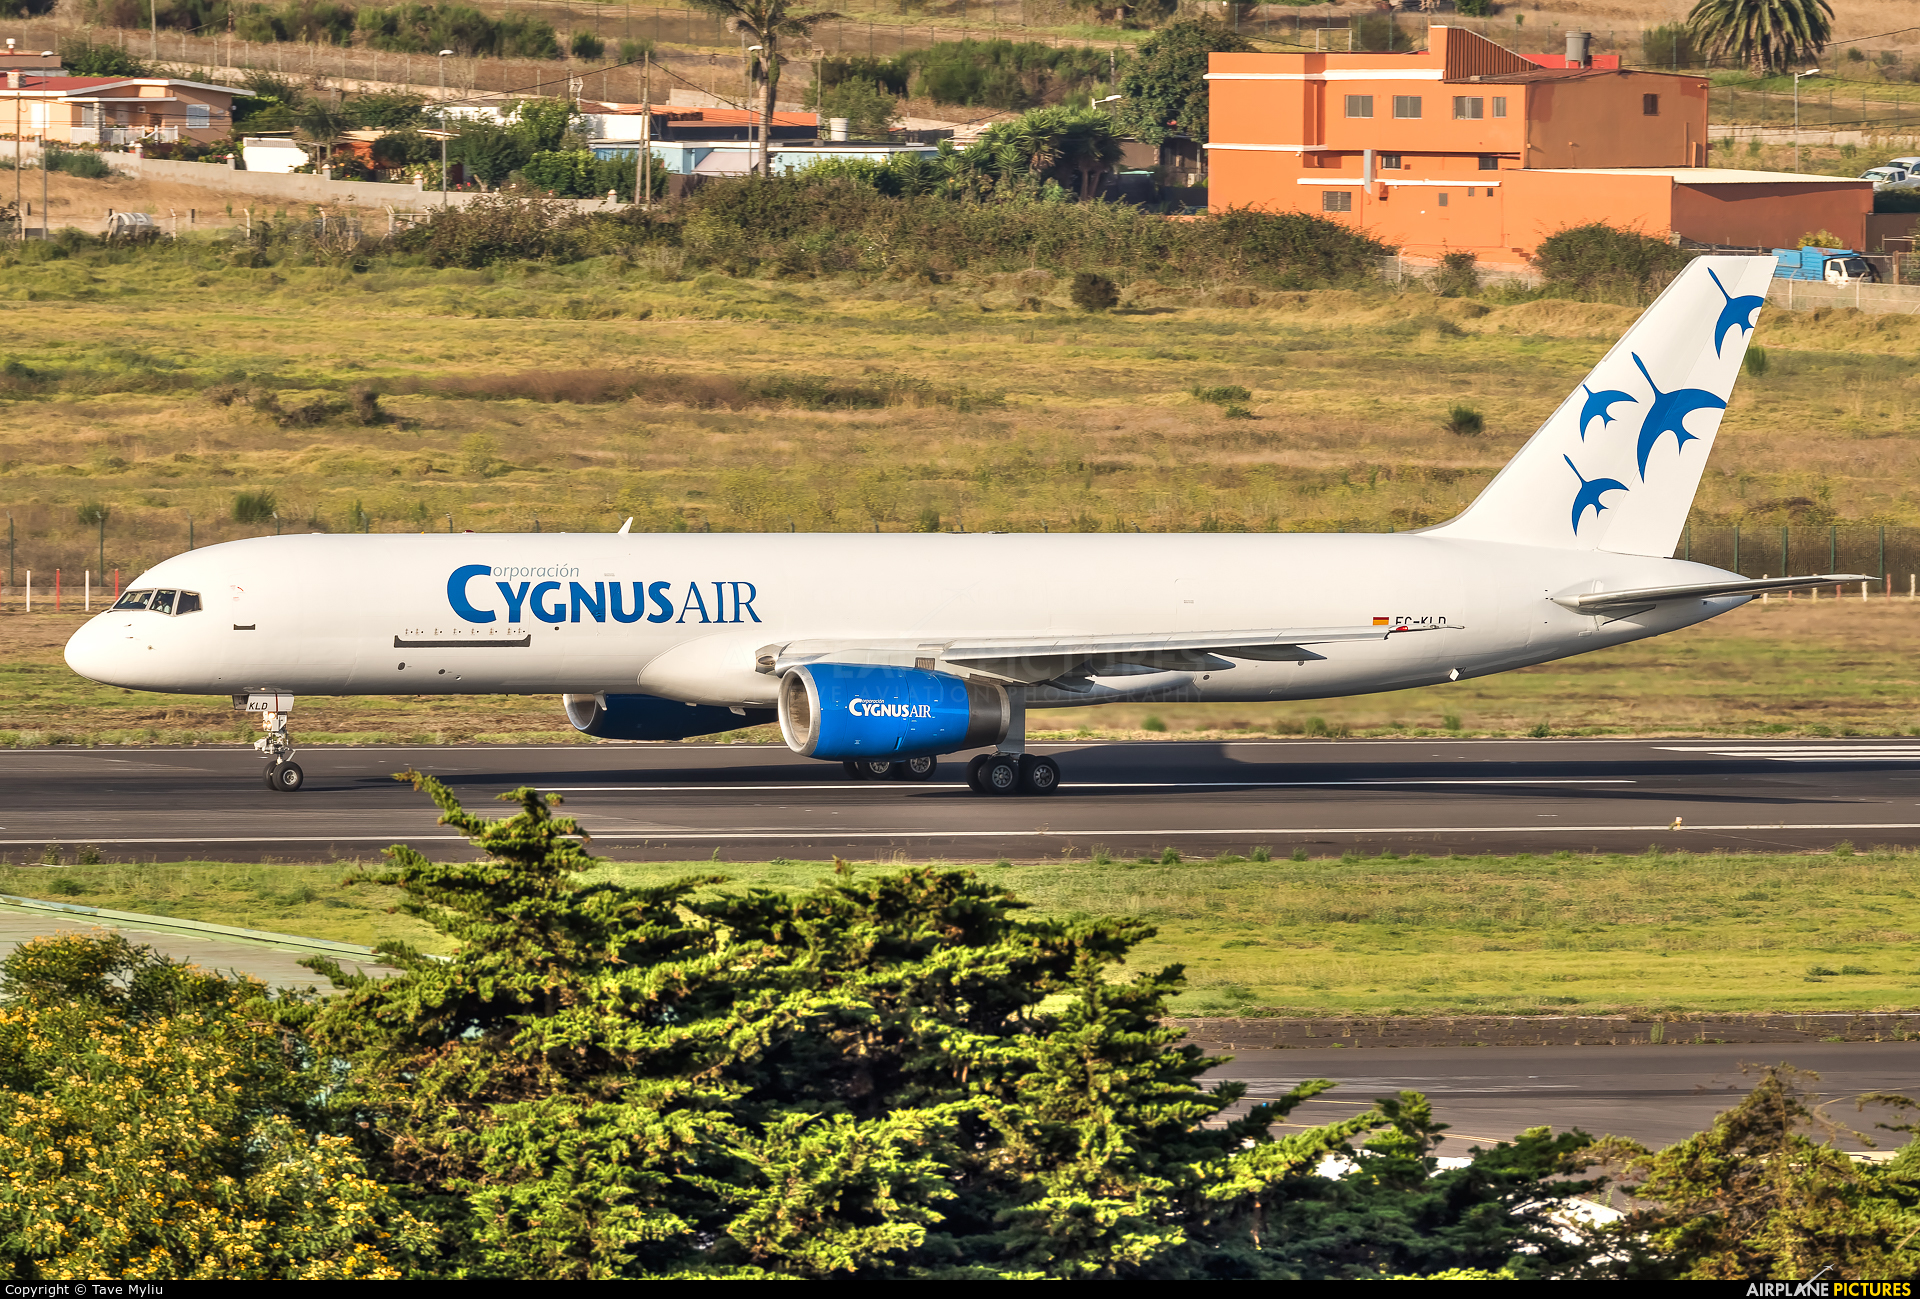 Cygnus Air EC-KLD aircraft at Tenerife Norte - Los Rodeos